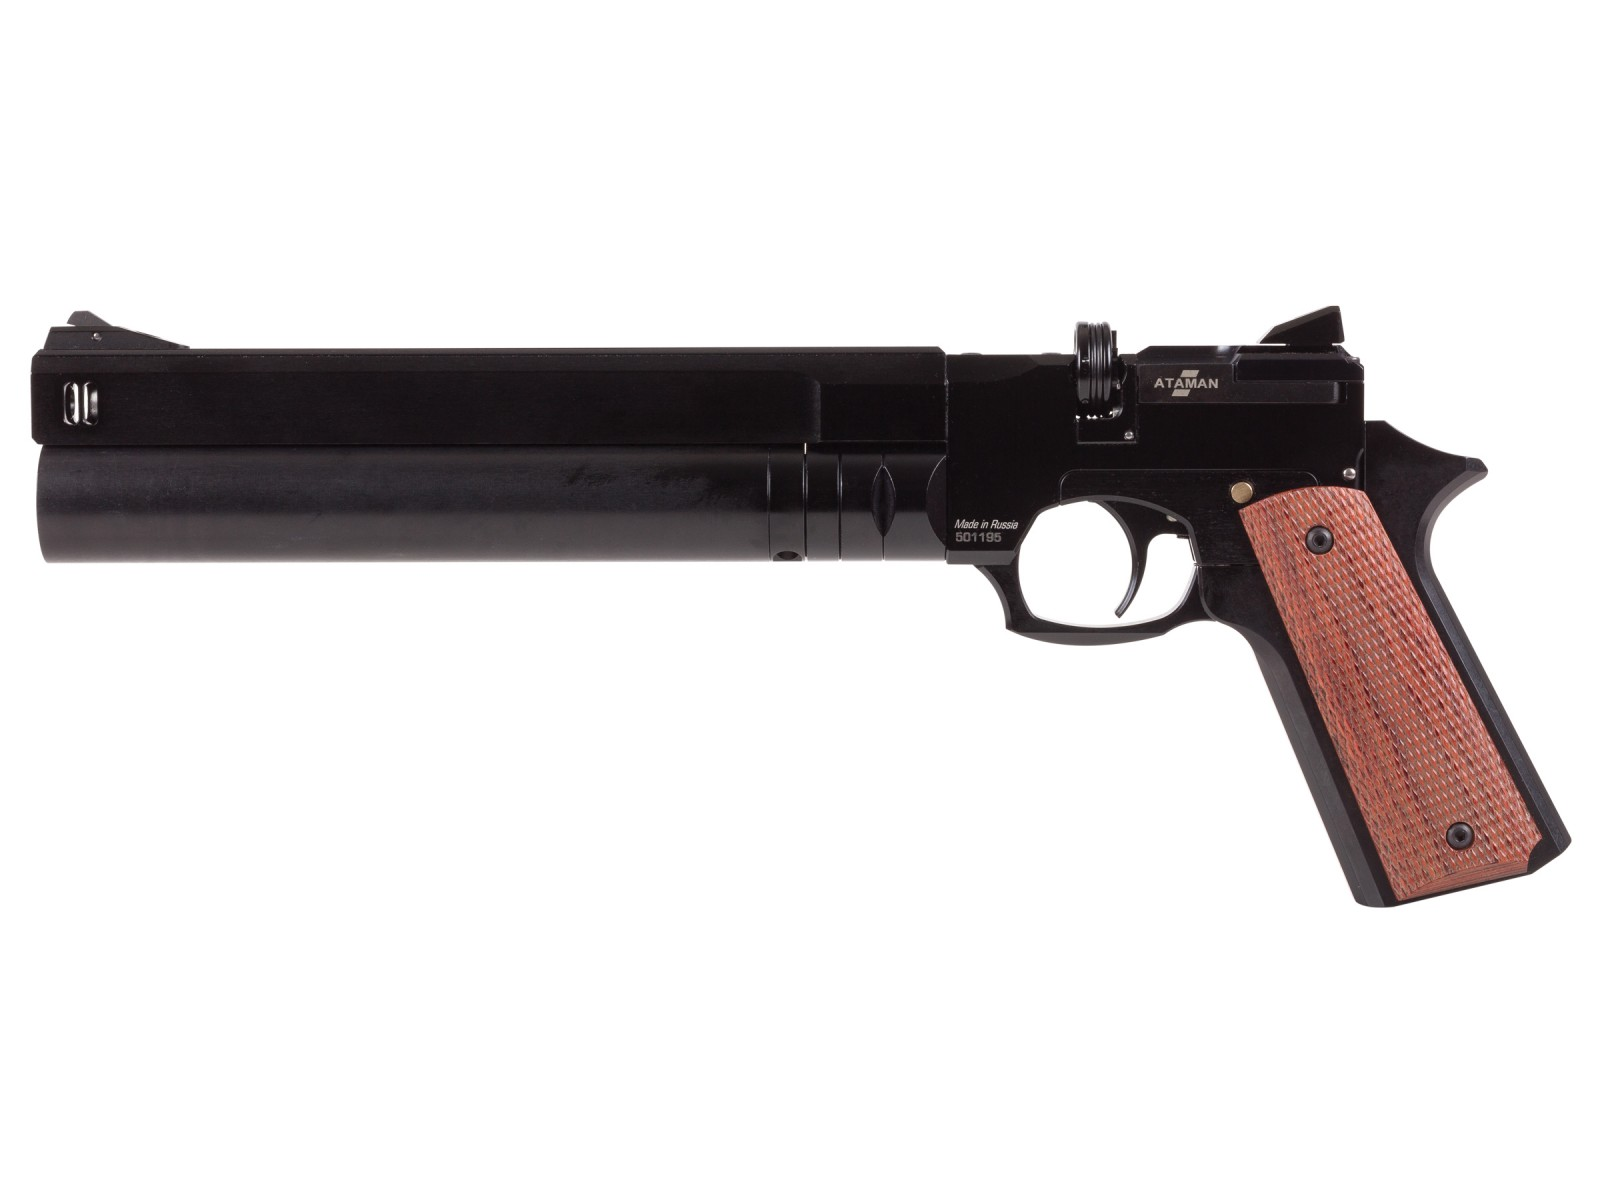 Ataman AP16 Regulated Standard Air Pistol 0.22